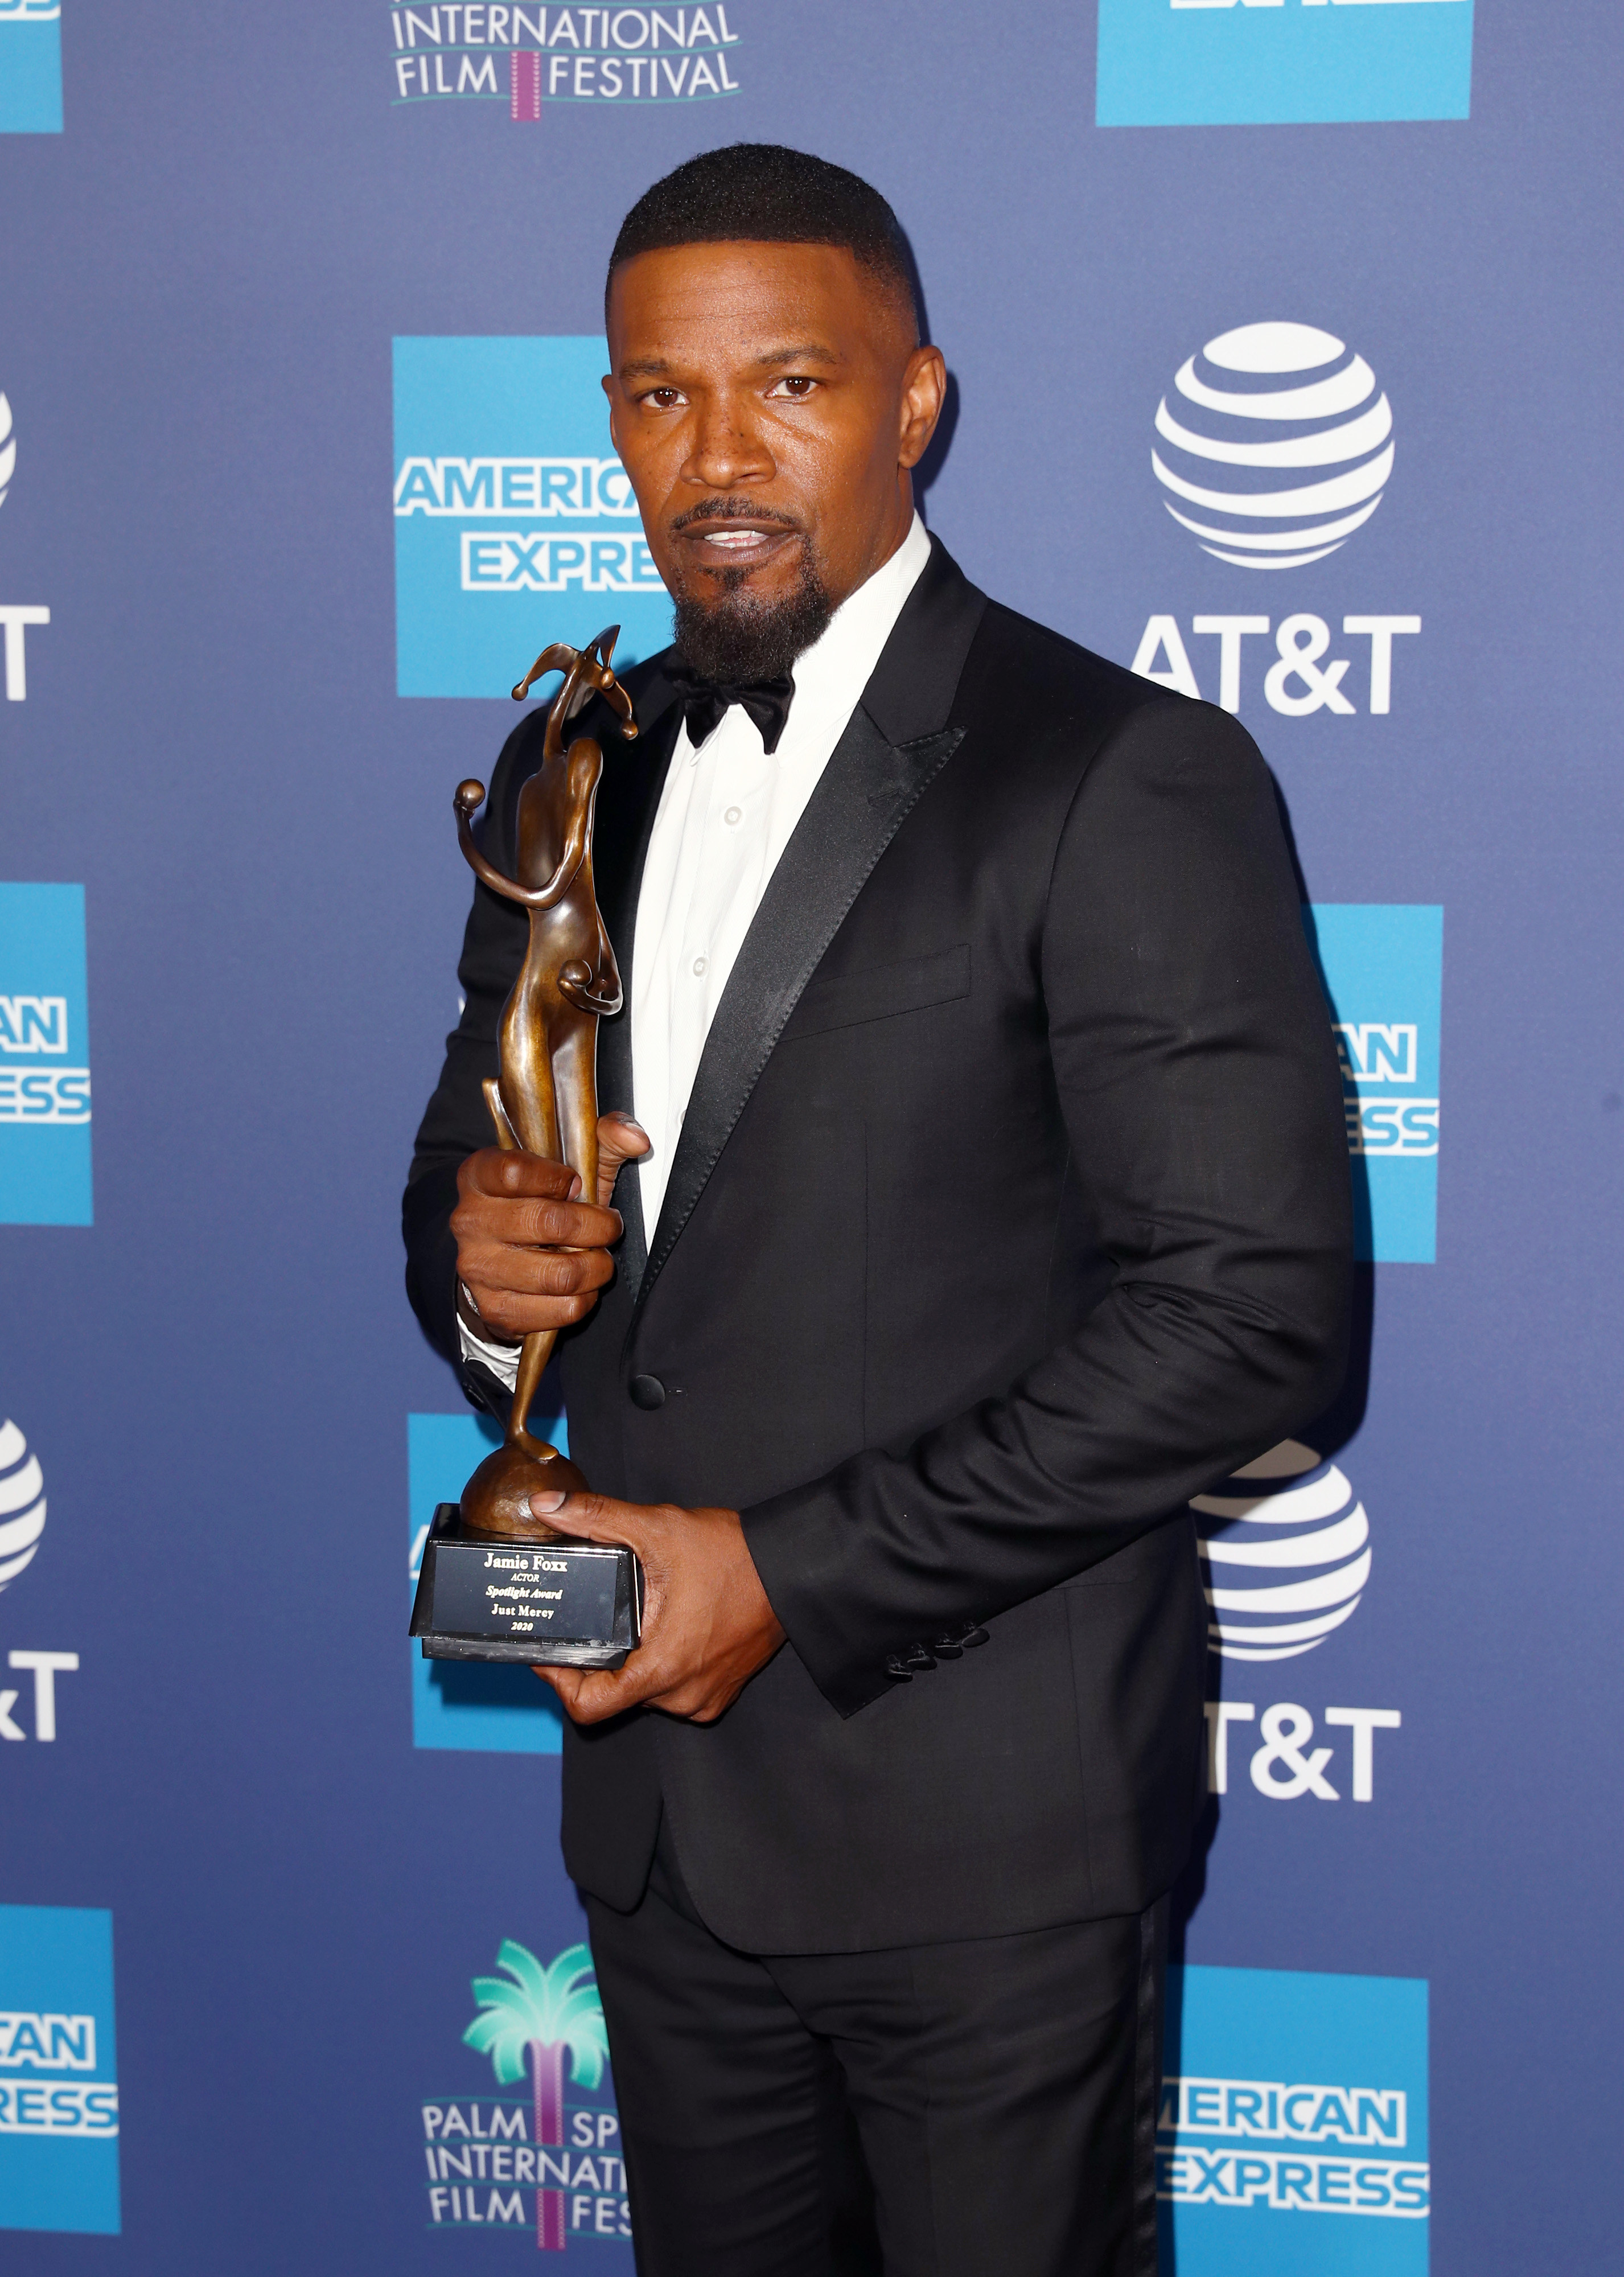 Jamie Foxx holding an award wearing a dark suit and bright shirt